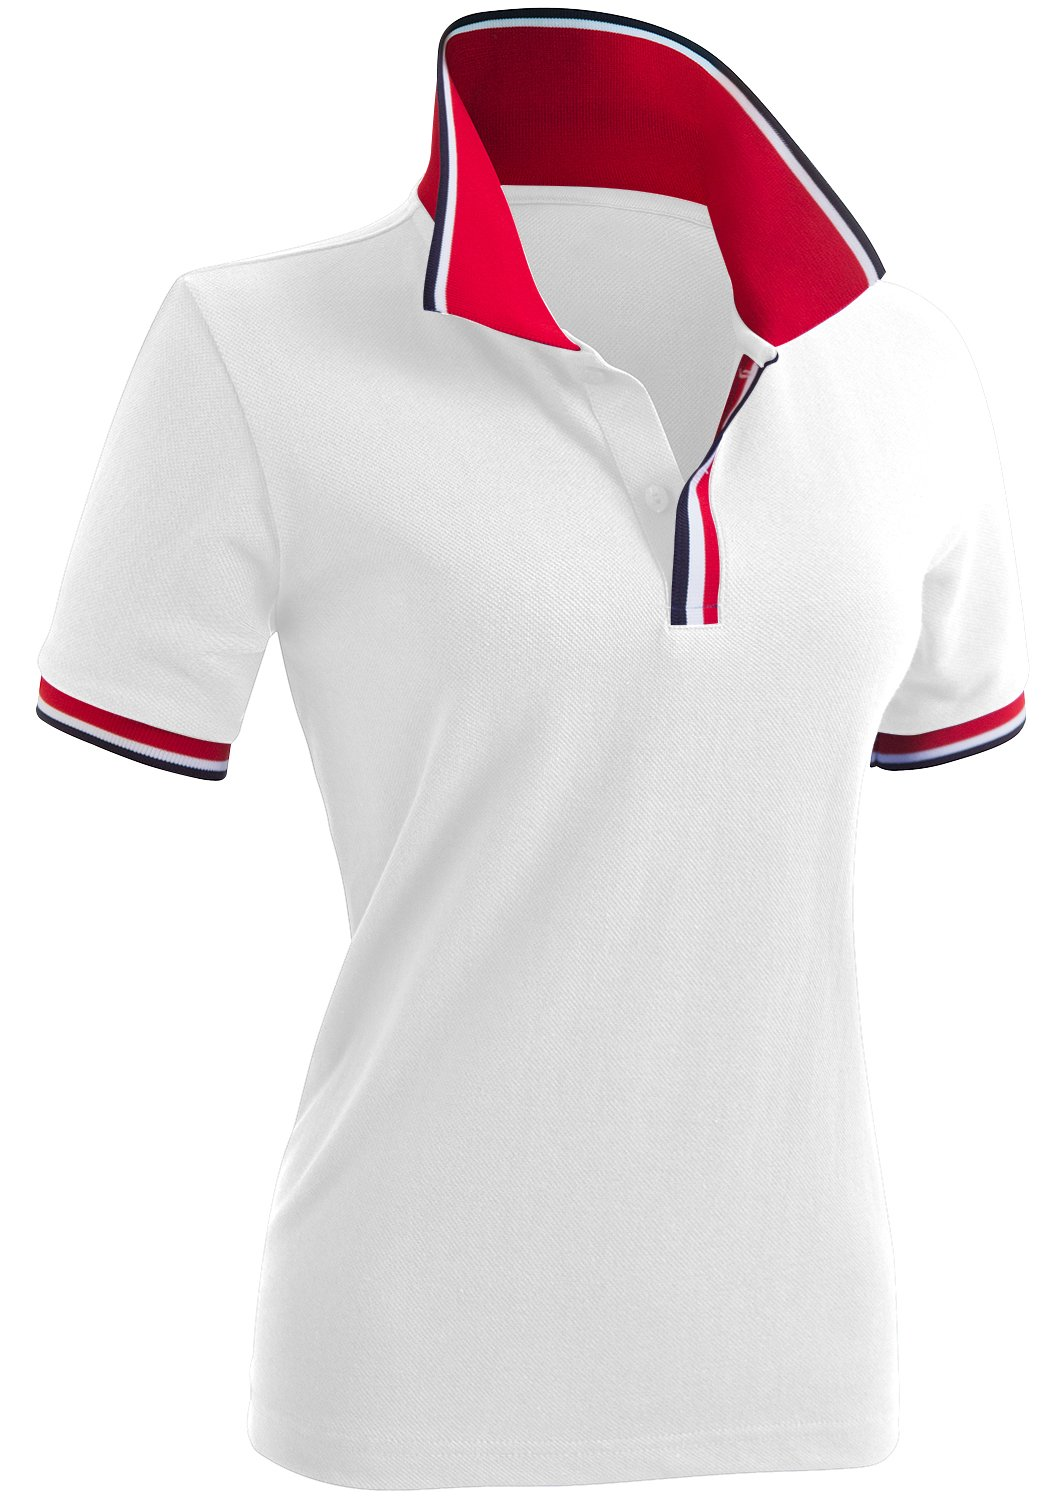 CLOVERY Women's Two Tone Collar Short Sleeve Basic Polo Shirts White US L/Tag L